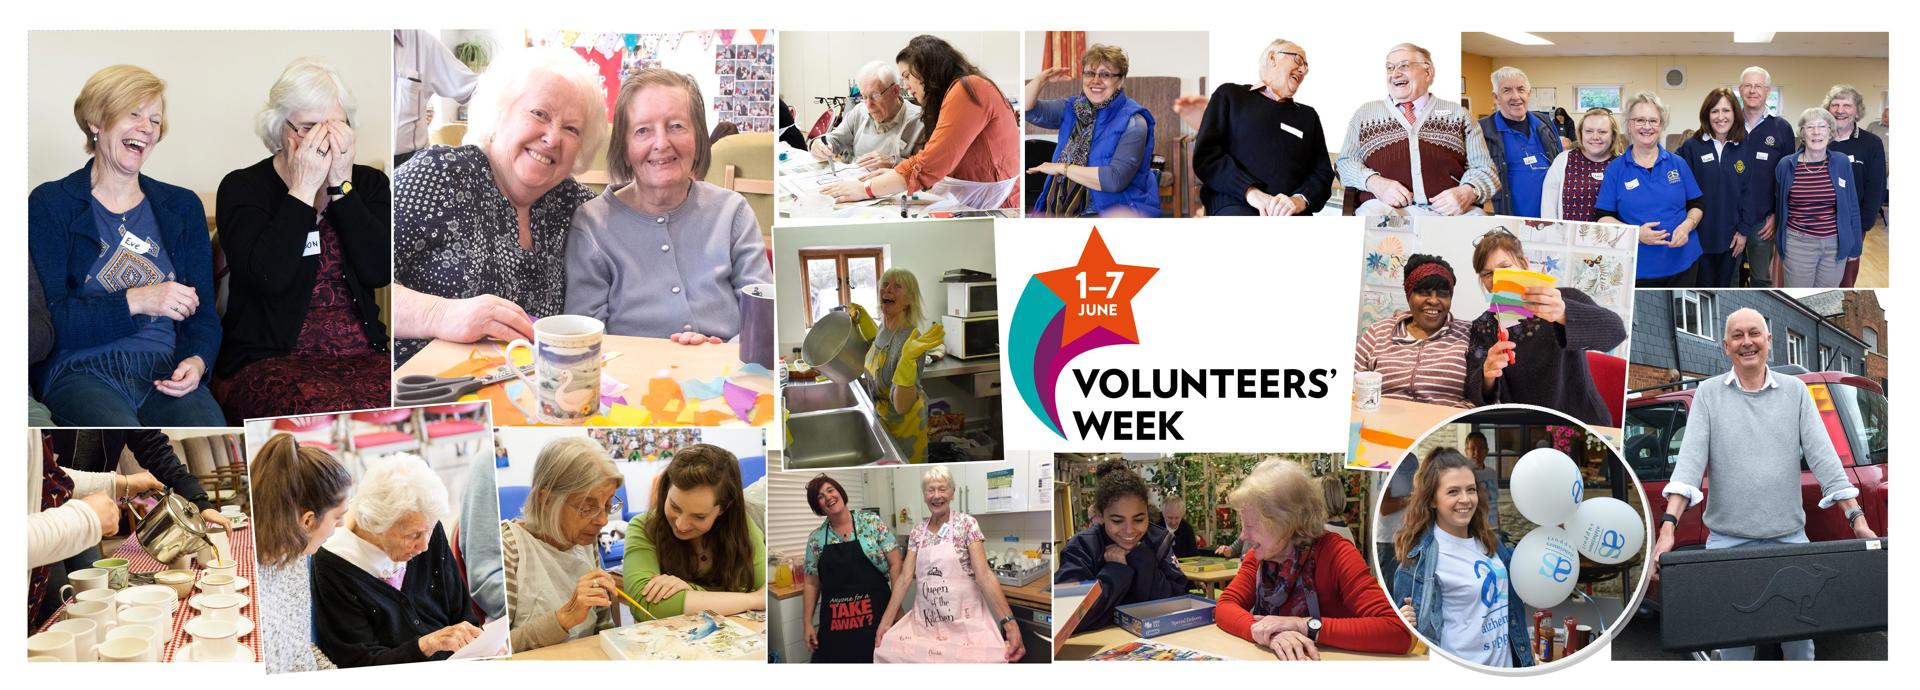 Volunteers Week banner